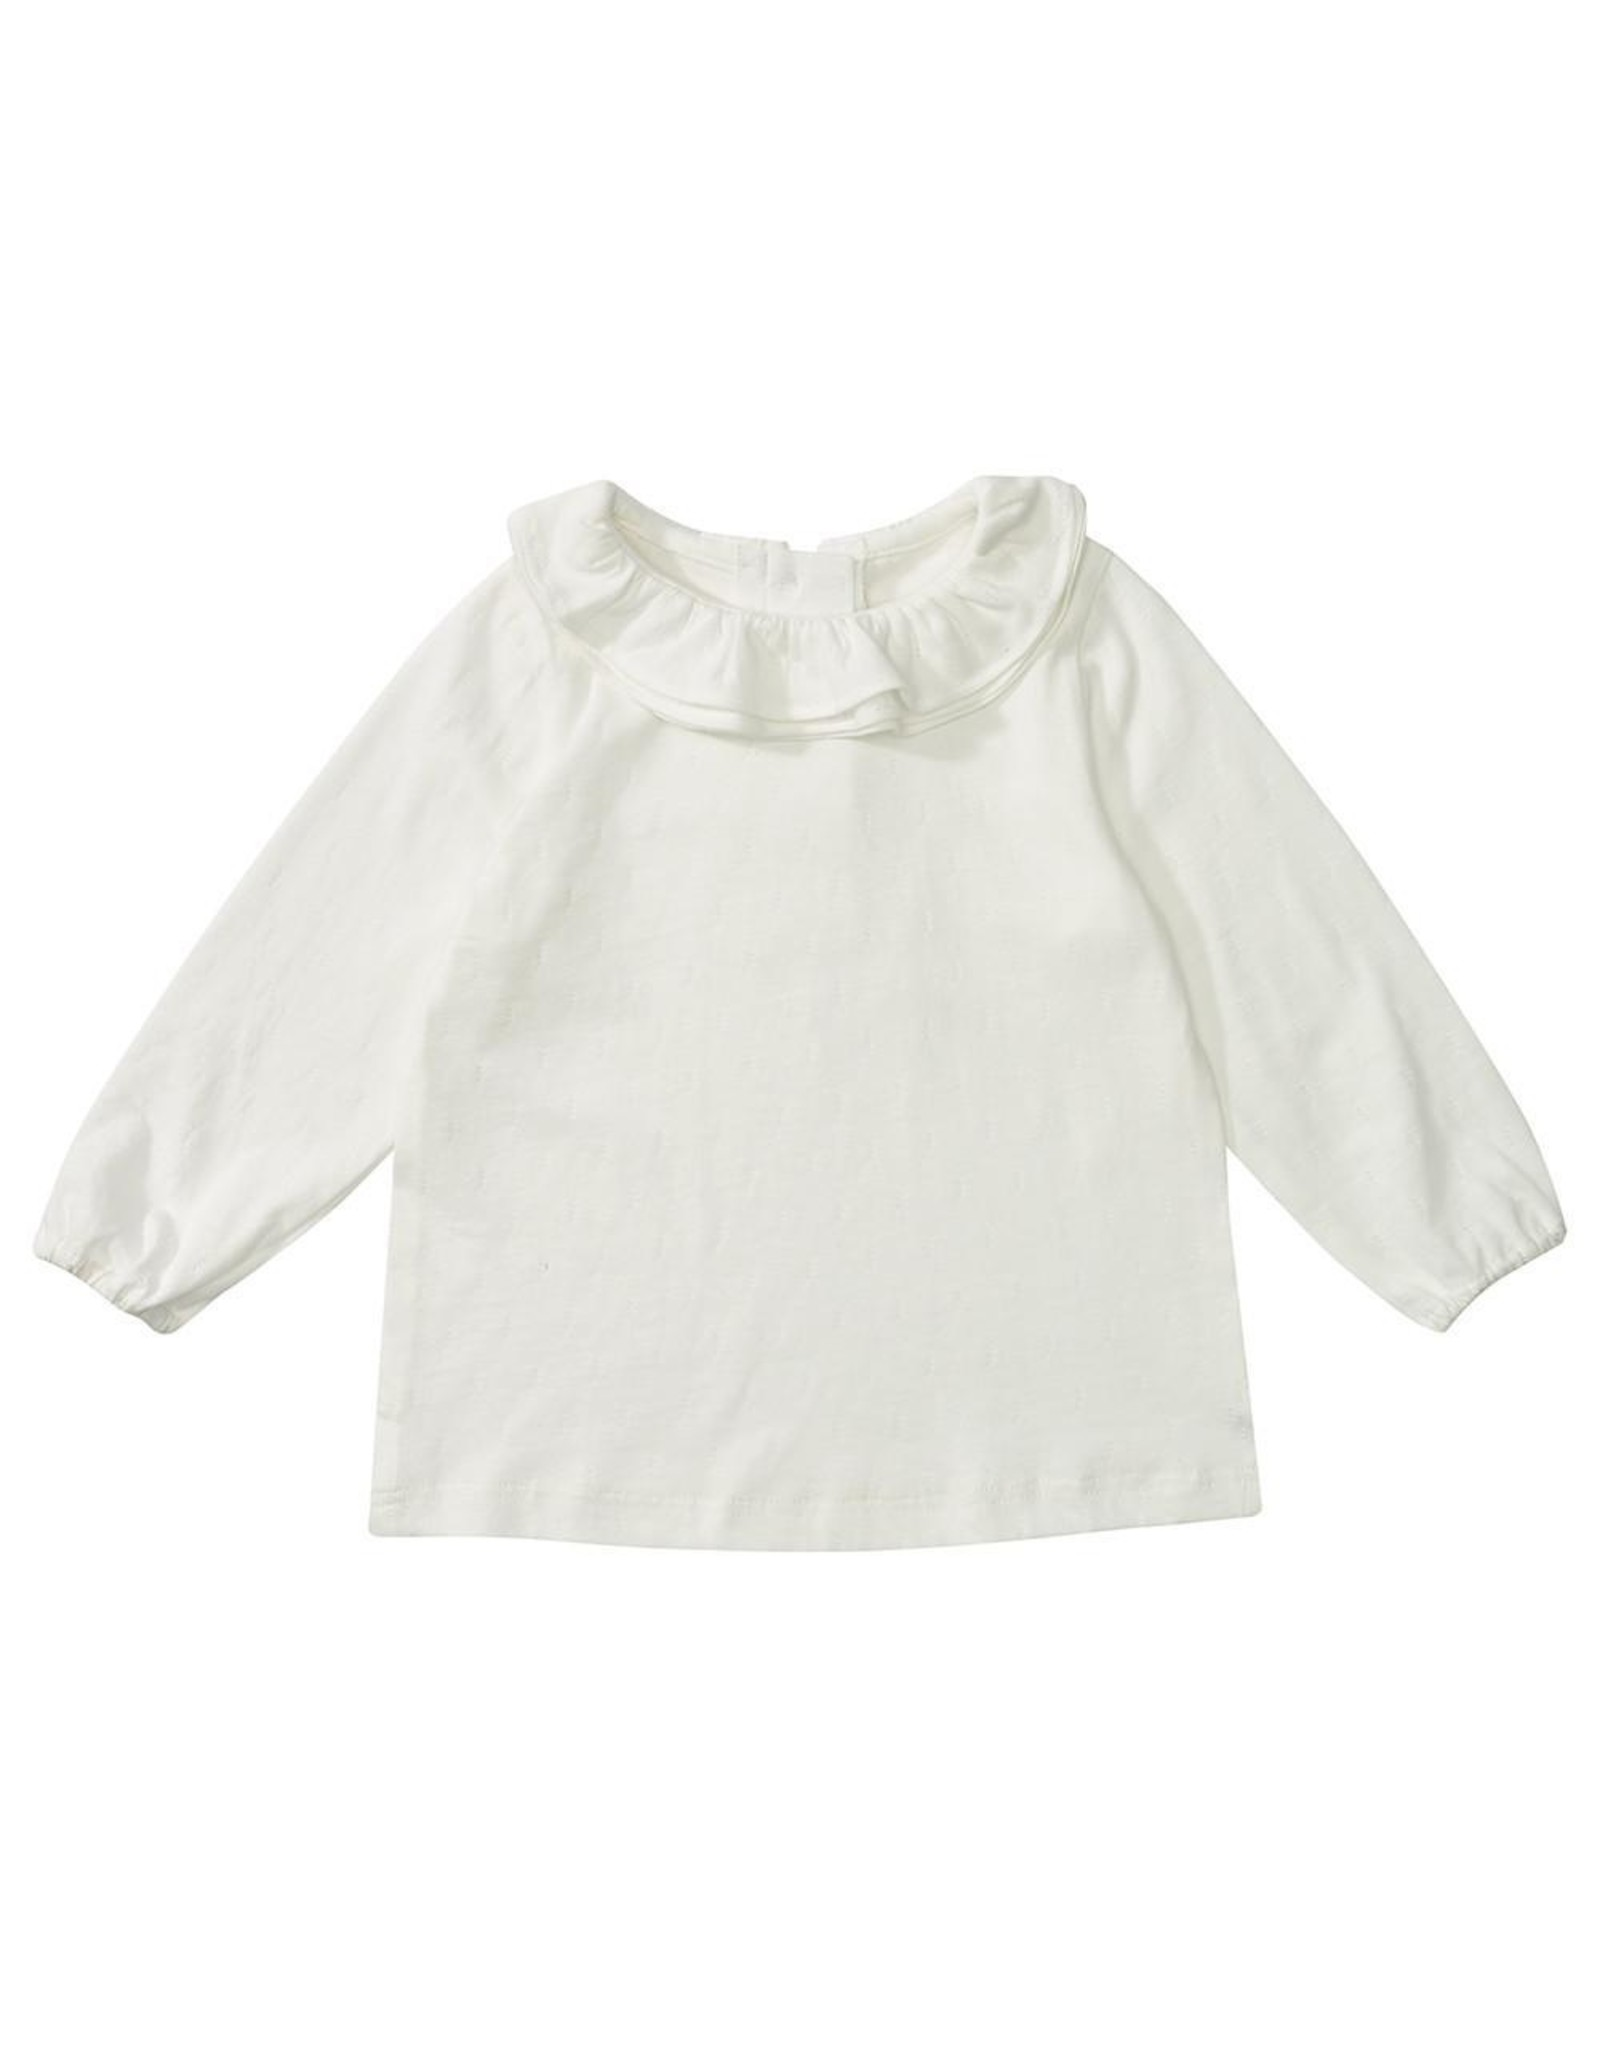 Dotty Dungarees Margaux Ruffle Neck Top- White